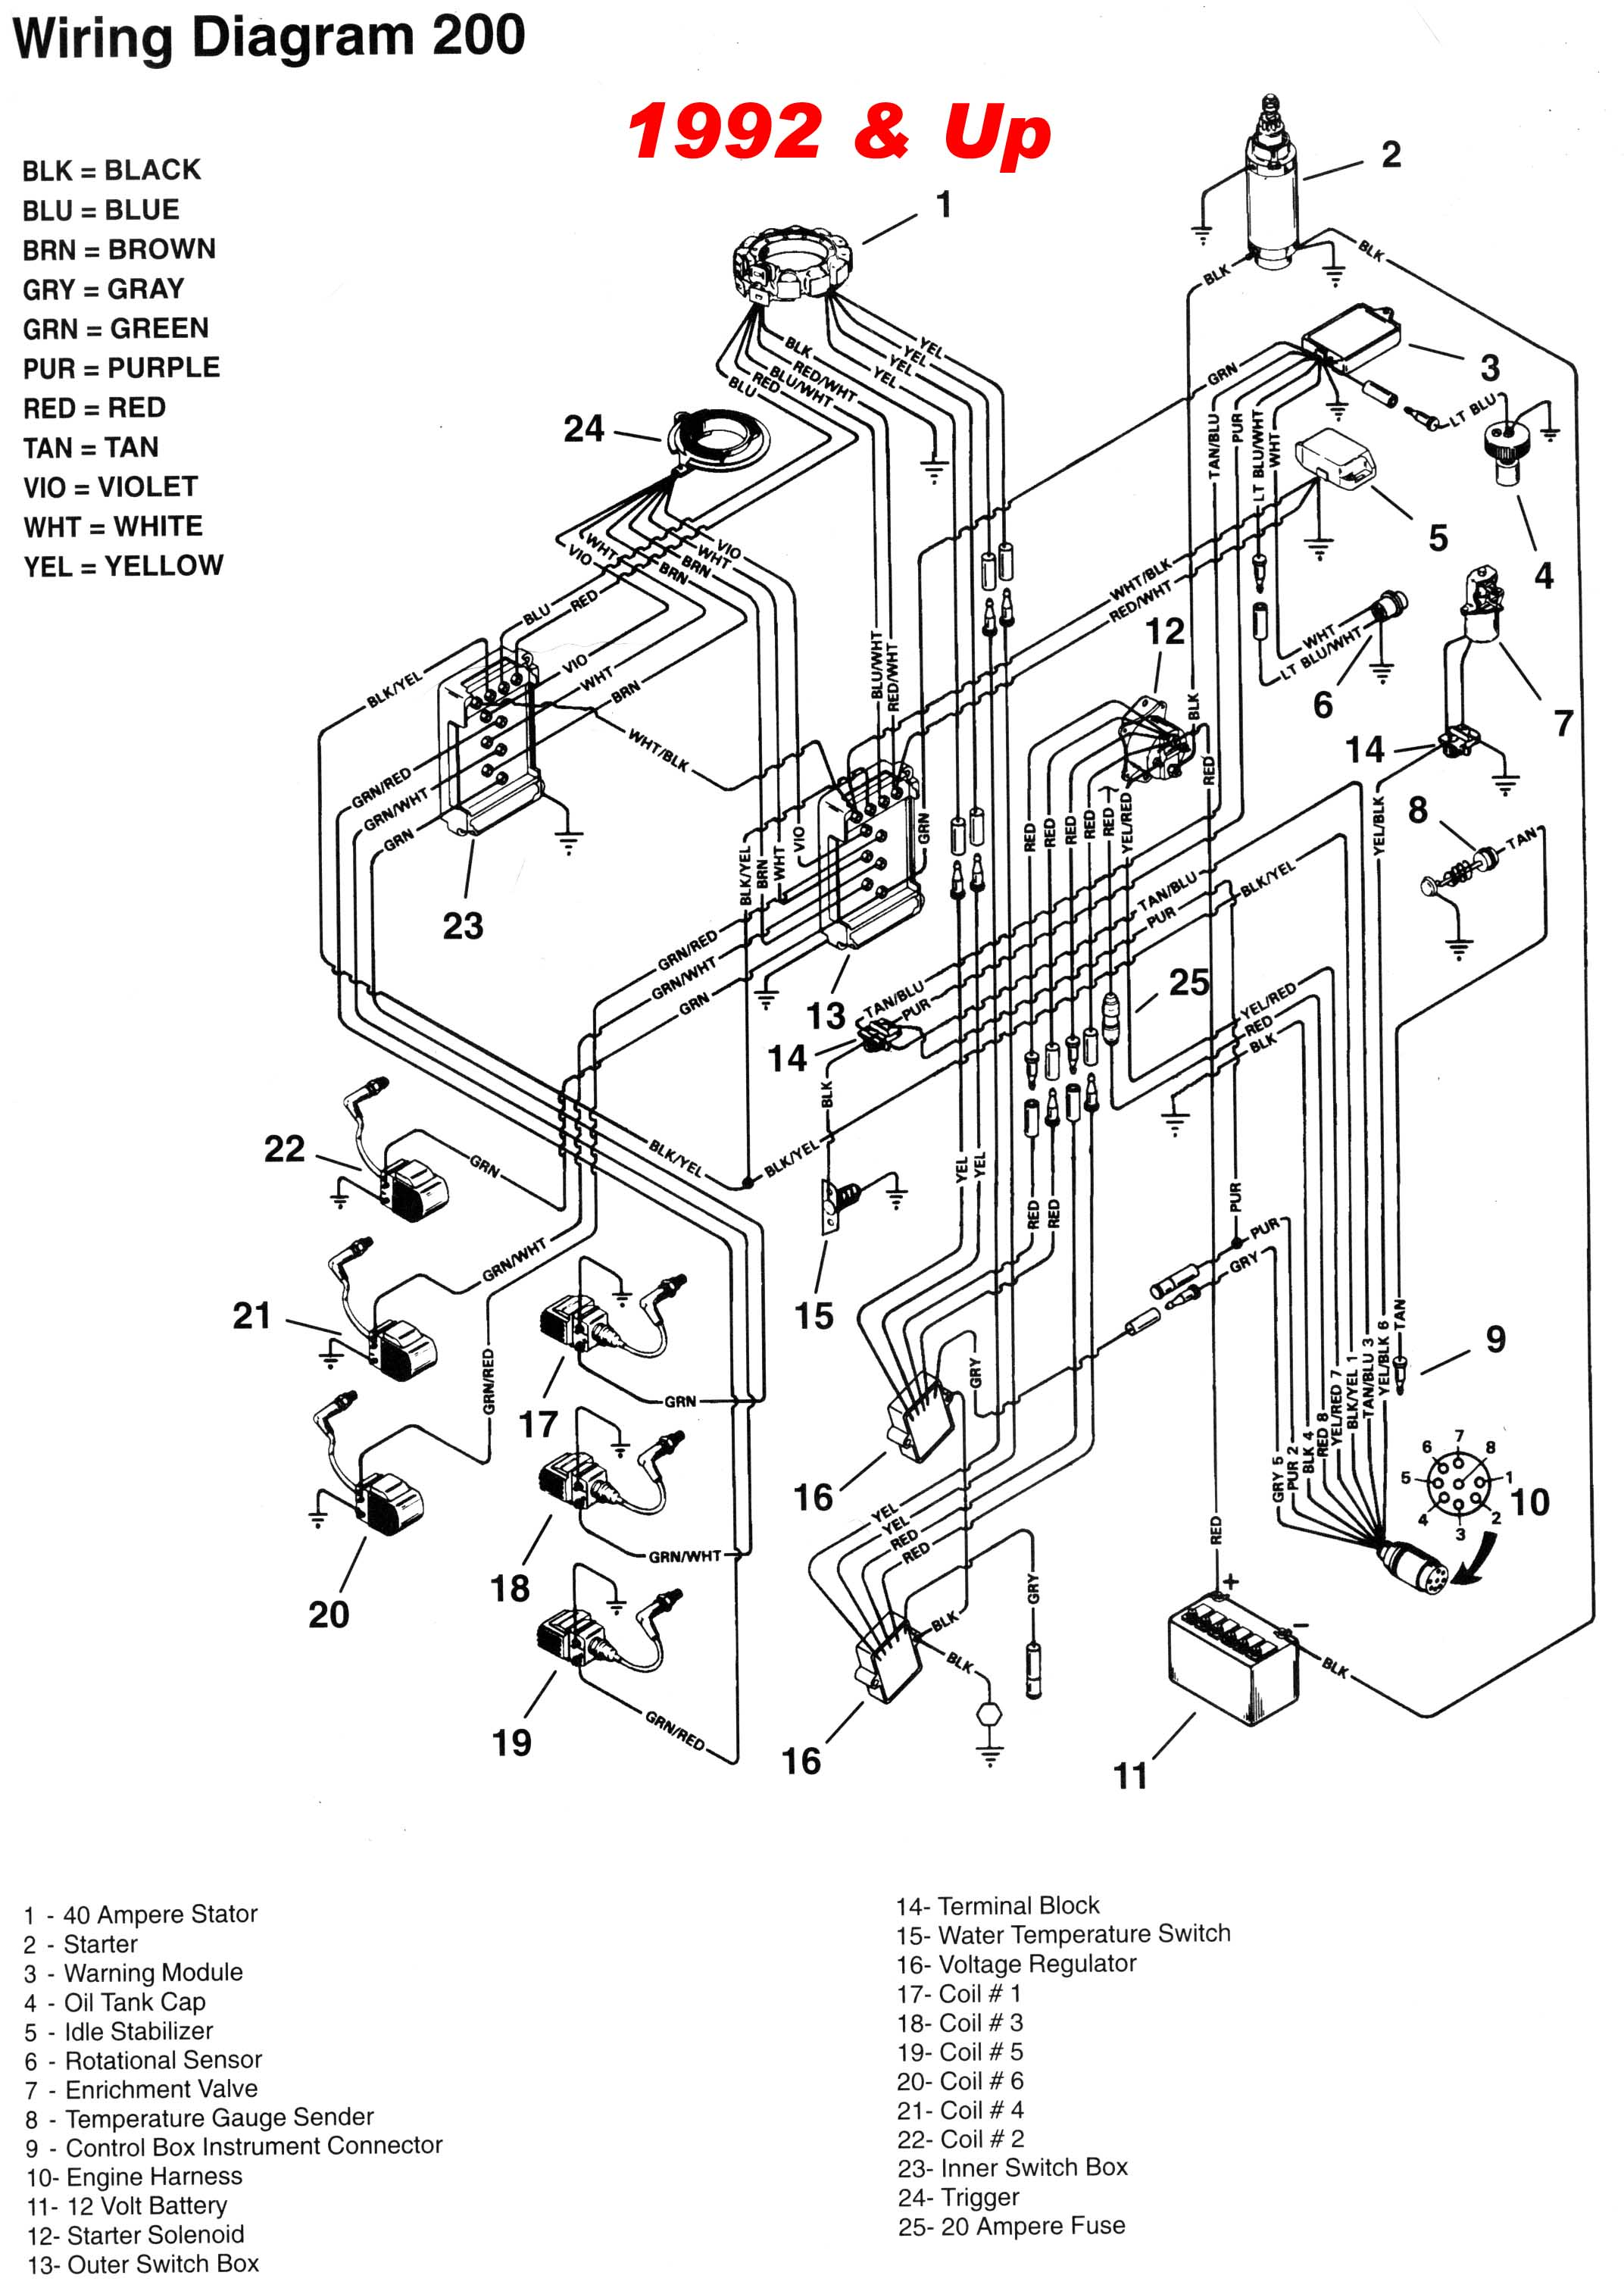 Watch likewise 4 Stroke Basic Motorcycle Wiring Diagram together with P 0996b43f80370bca together with Ford 460 Water Temperature Sensor Location likewise Mercury Boat Motors Wiring Diagram. on location of oil sending unit on 1991 454